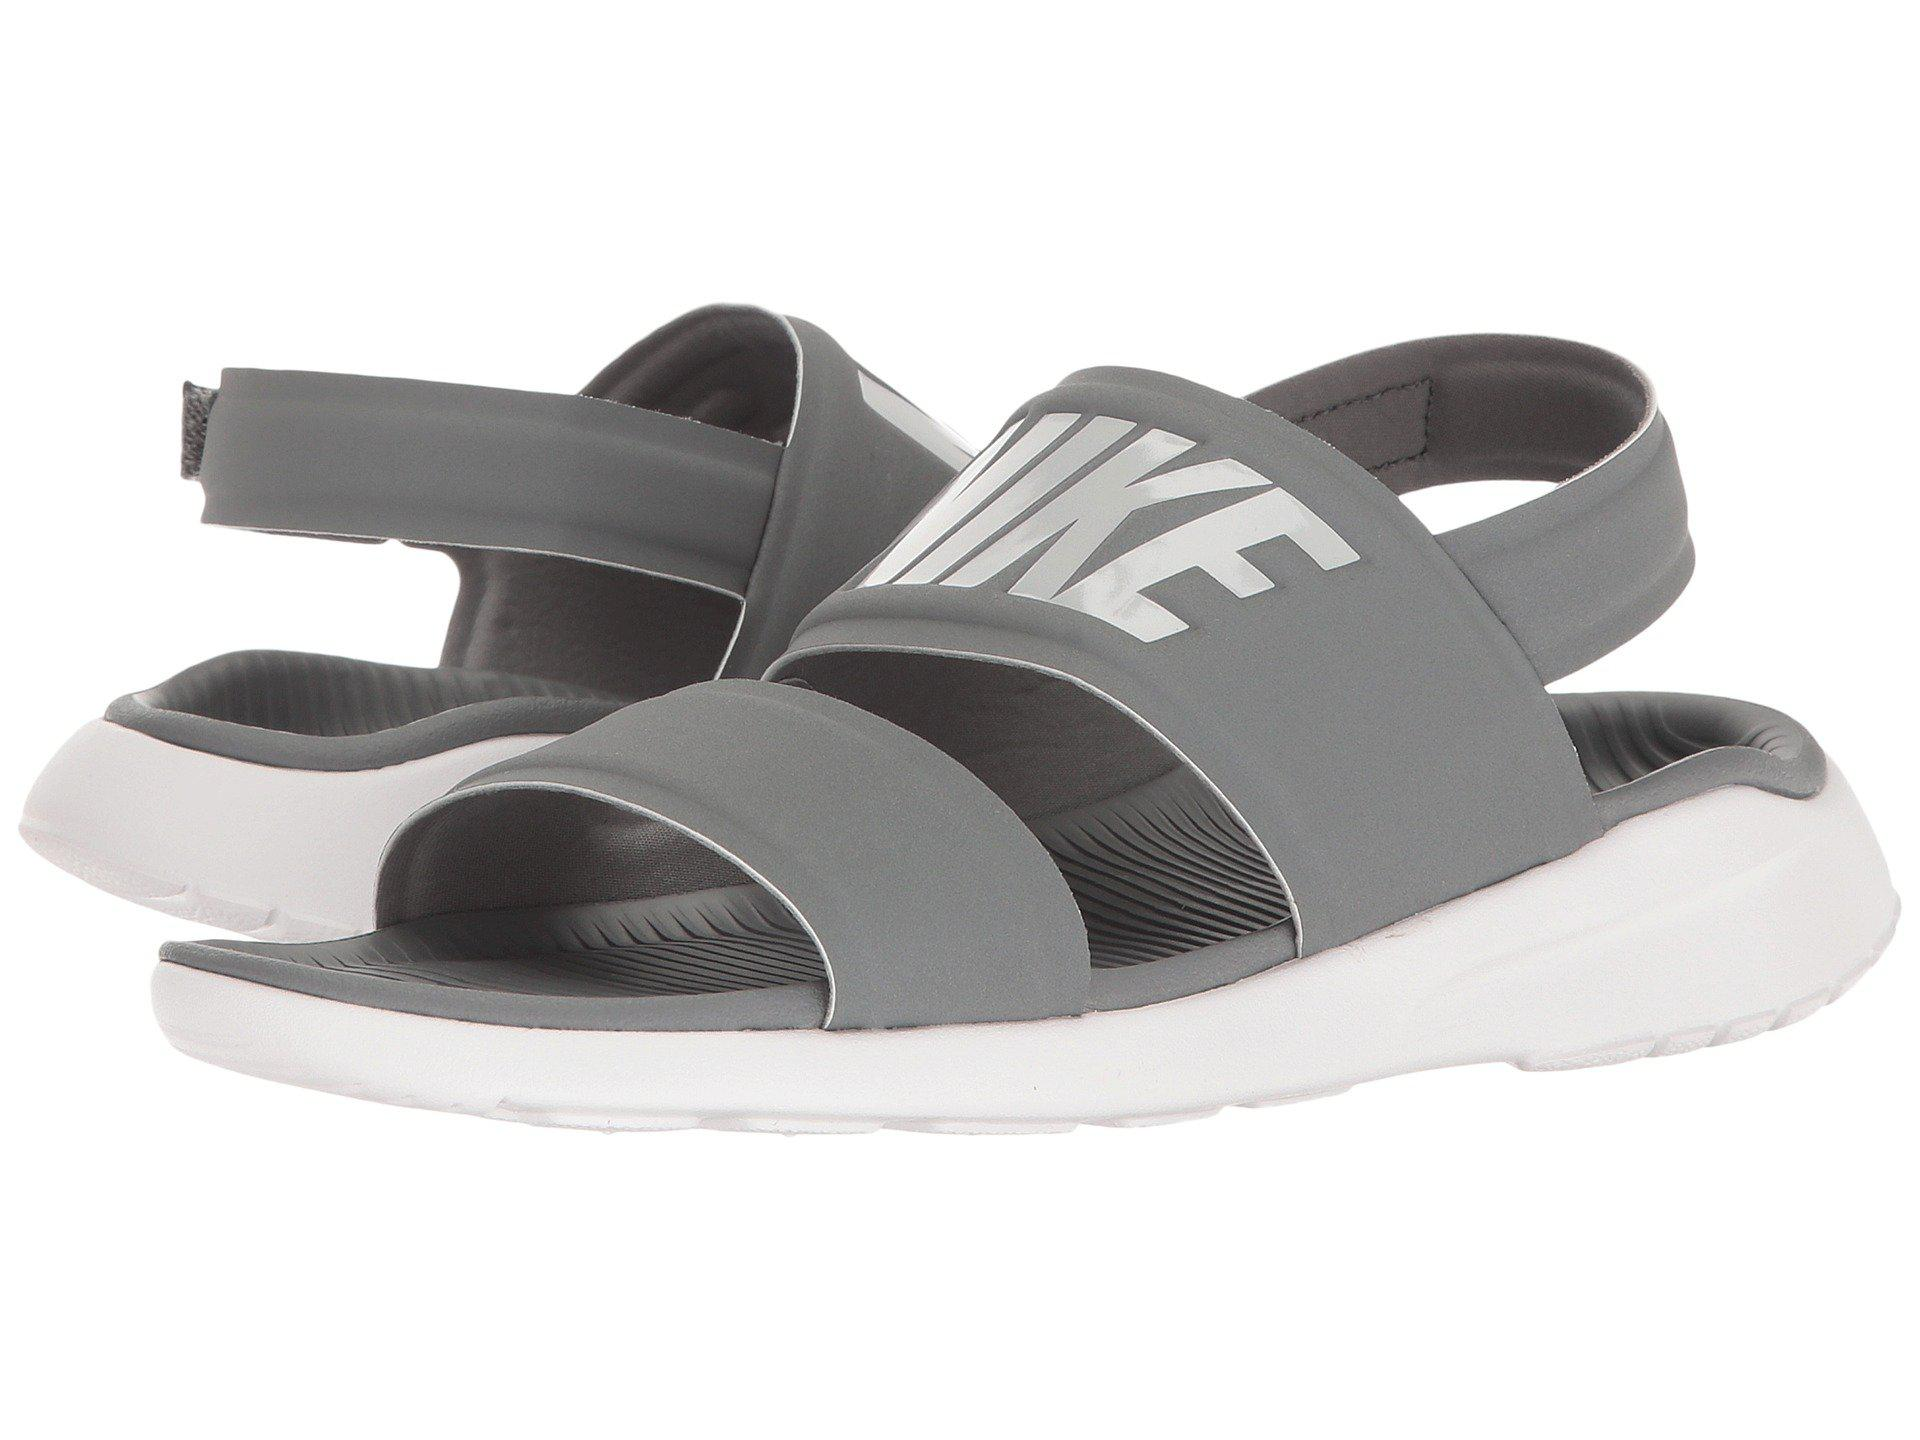 0aed20732 ... coupon lyst nike tanjun sandal black black white womens shoes in gray  c396b cc226